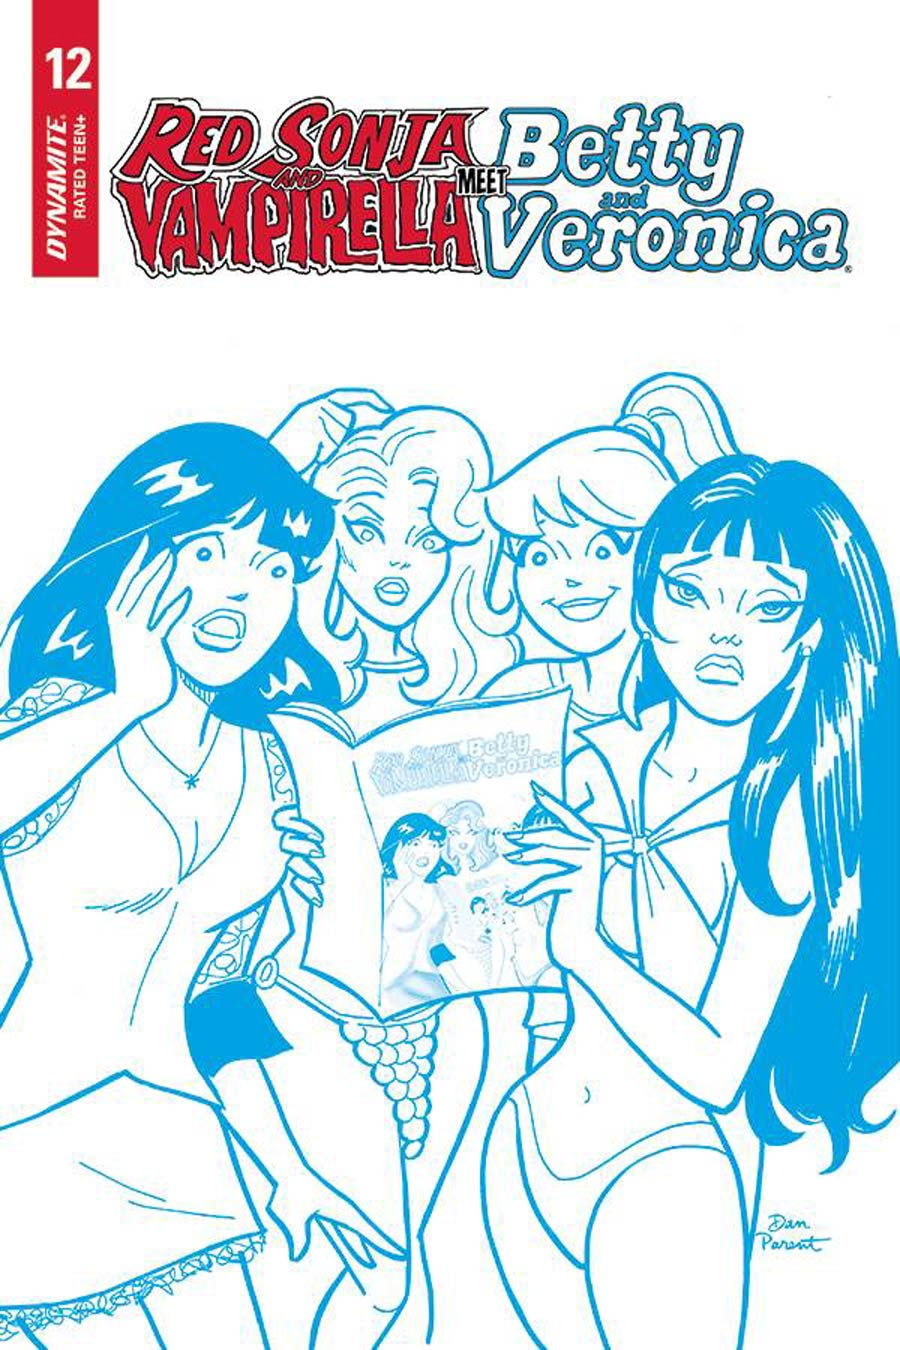 Red Sonja And Vampirella Meet Betty And Veronica #12 Cover J Incentive Dan Parent Blue Tint Cover